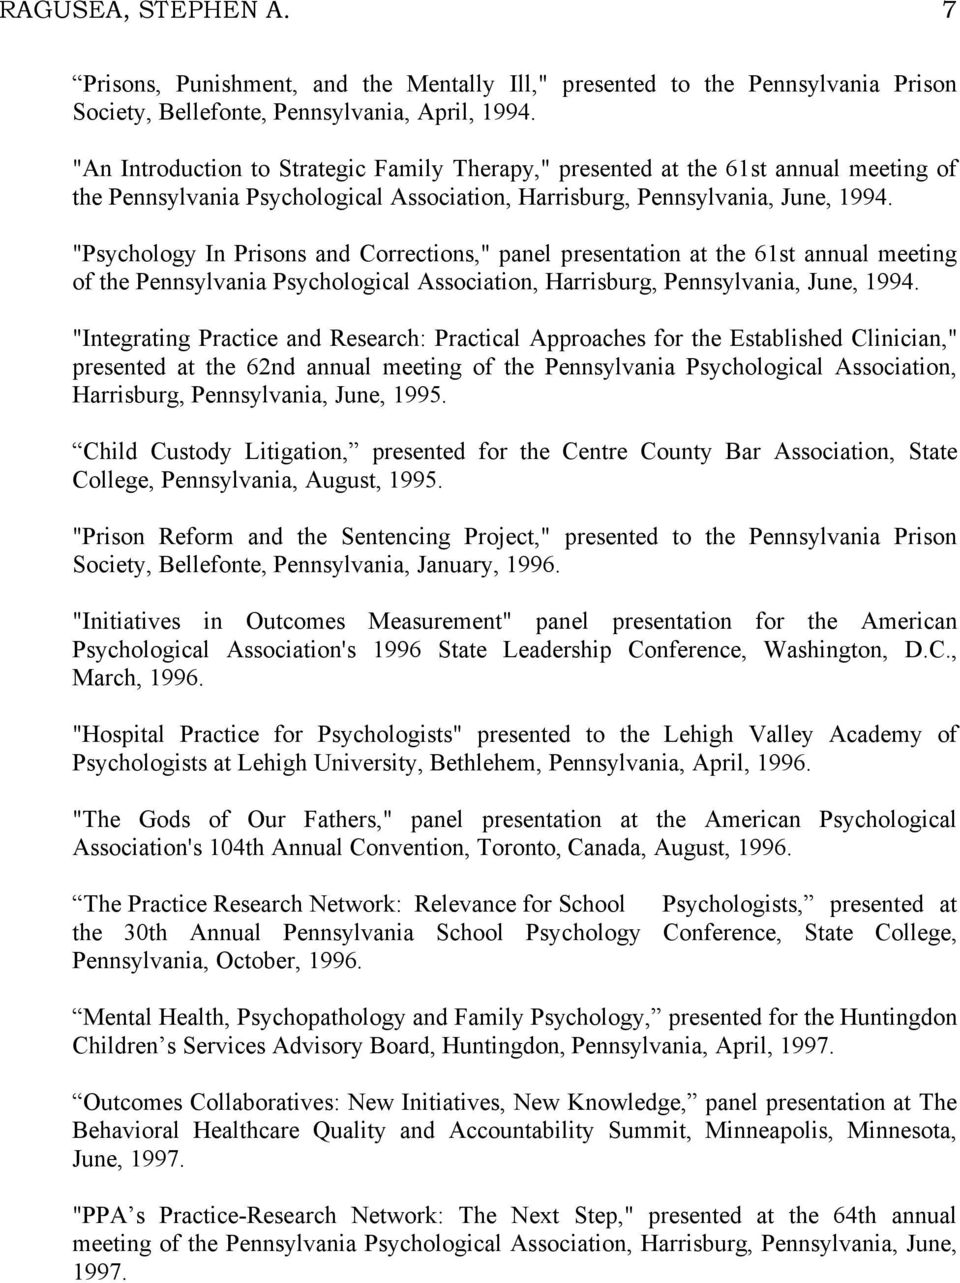 """Psychology In Prisons and Corrections,"" panel presentation at the 61st annual meeting of the Pennsylvania Psychological Association, Harrisburg, Pennsylvania, June, 1994."